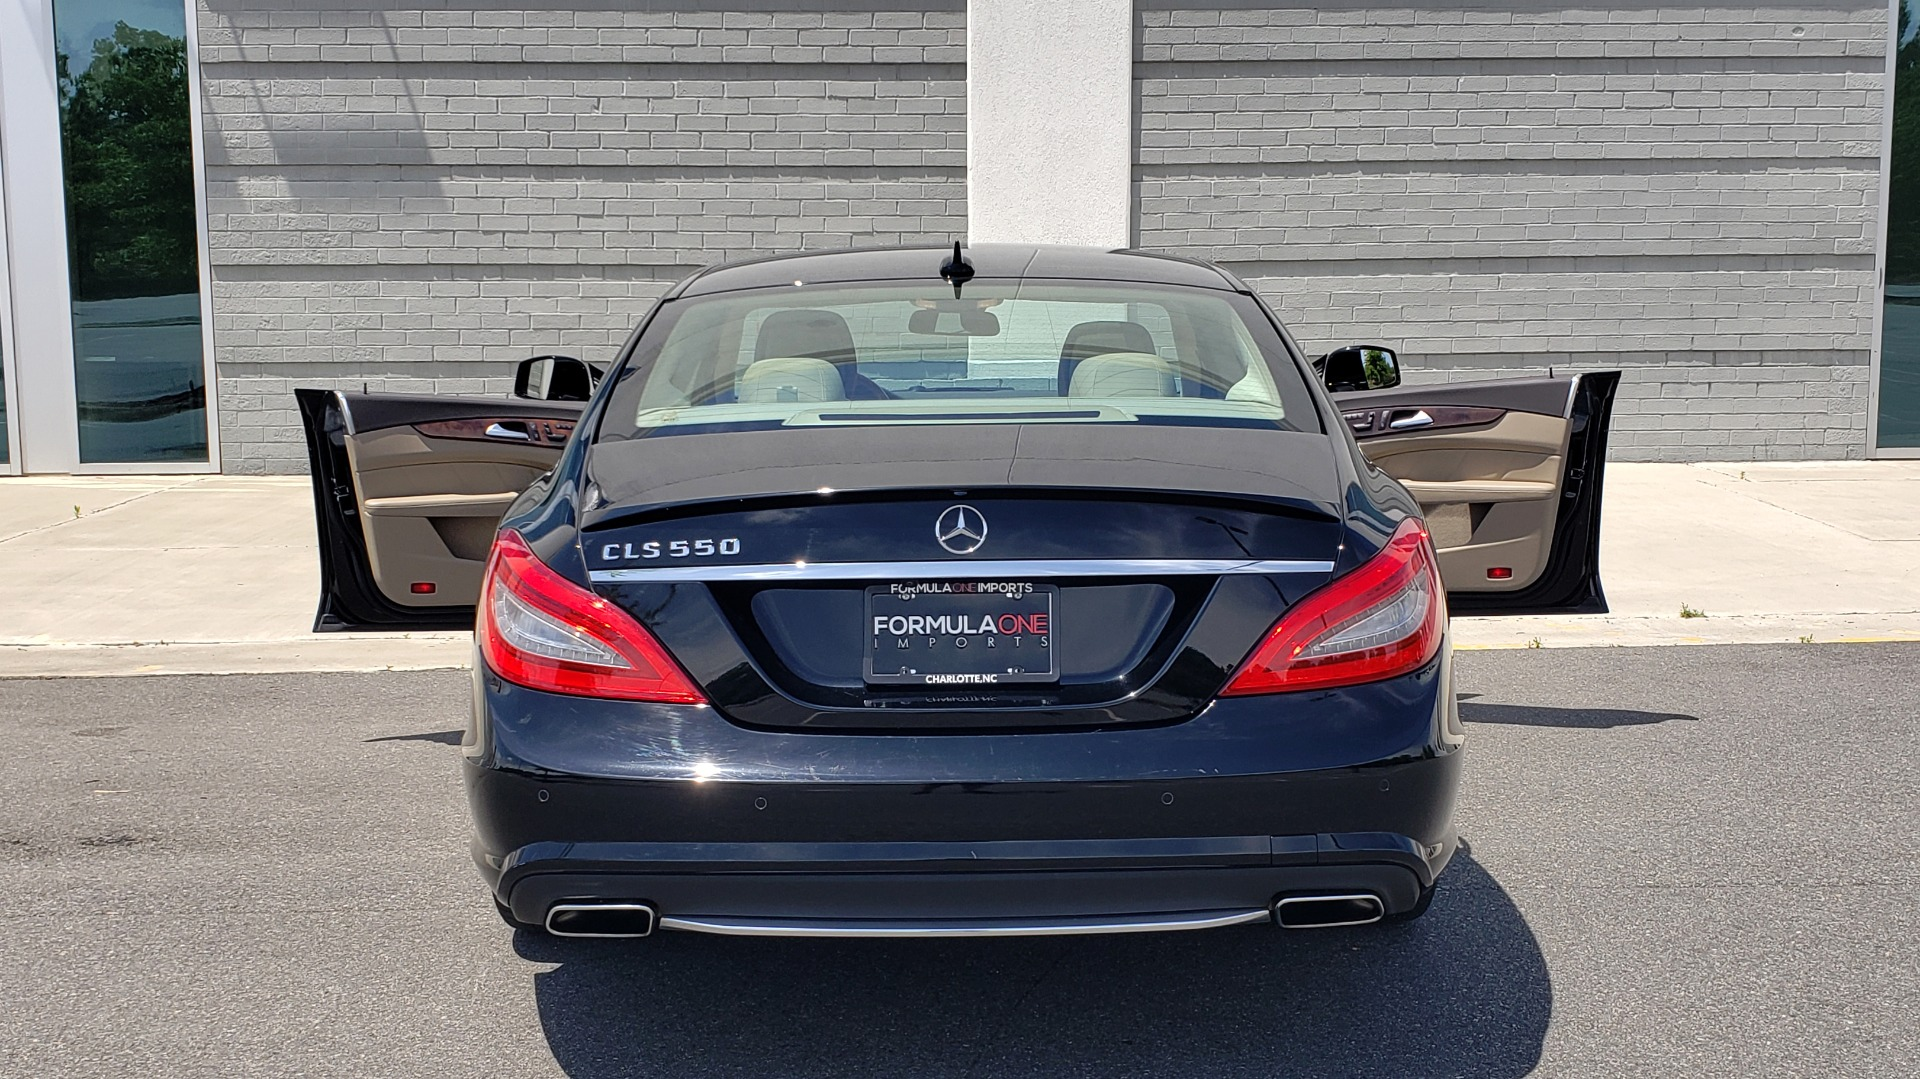 Used 2014 Mercedes-Benz CLS-CLASS CLS 550 PREMIUM / AMG SPORT WHLS / SUNROOF / LANE TRACK / PARKTRONIC for sale Sold at Formula Imports in Charlotte NC 28227 29